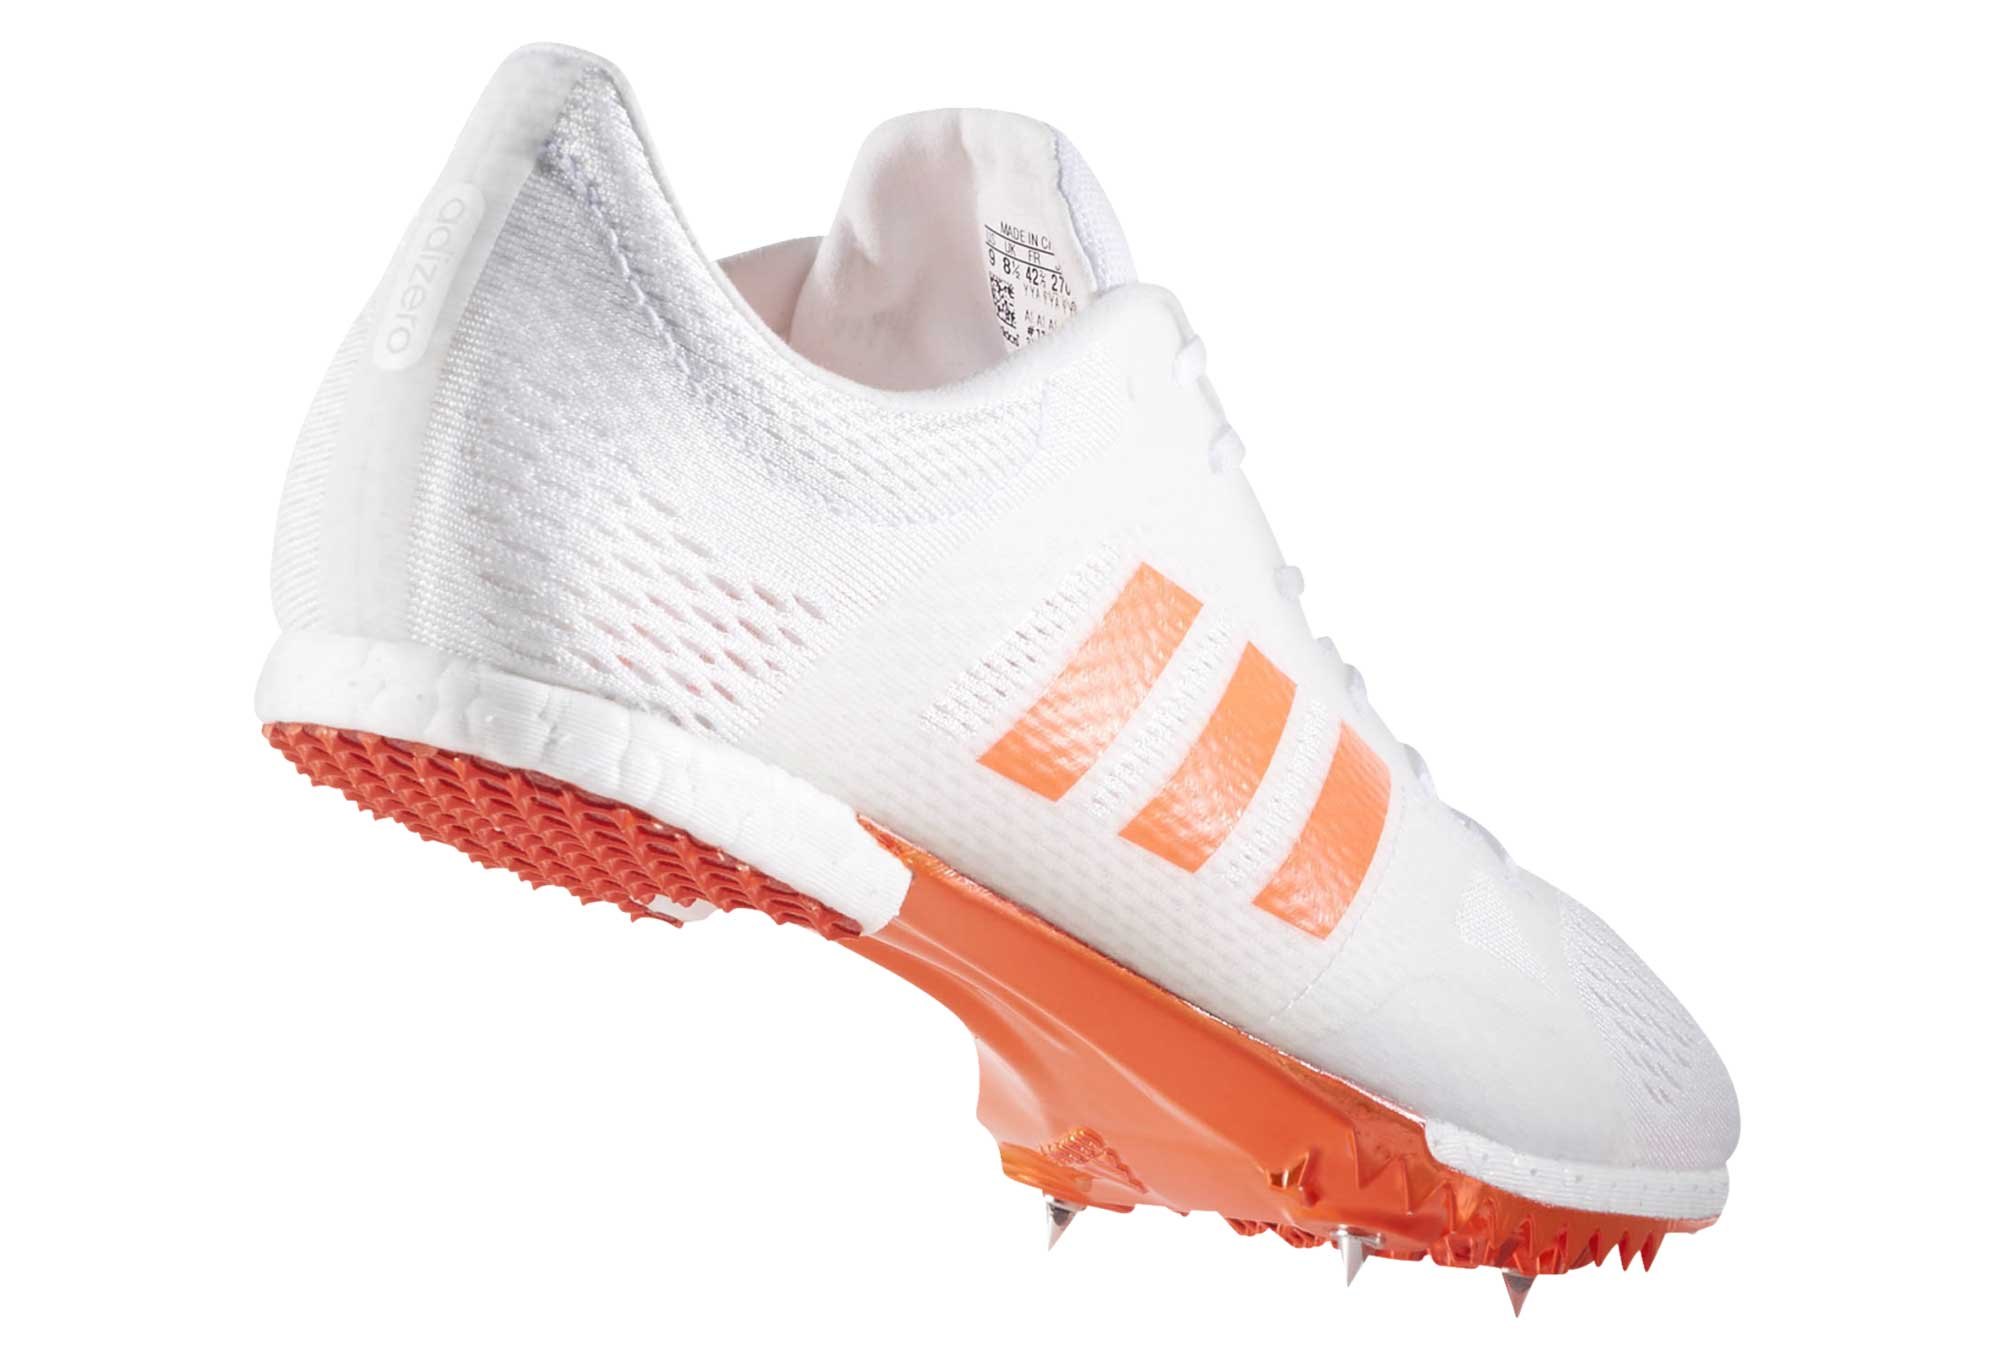 Adizero Blanc D'athlétisme Chaussures Middle Running Adidas Distance qfwx18T